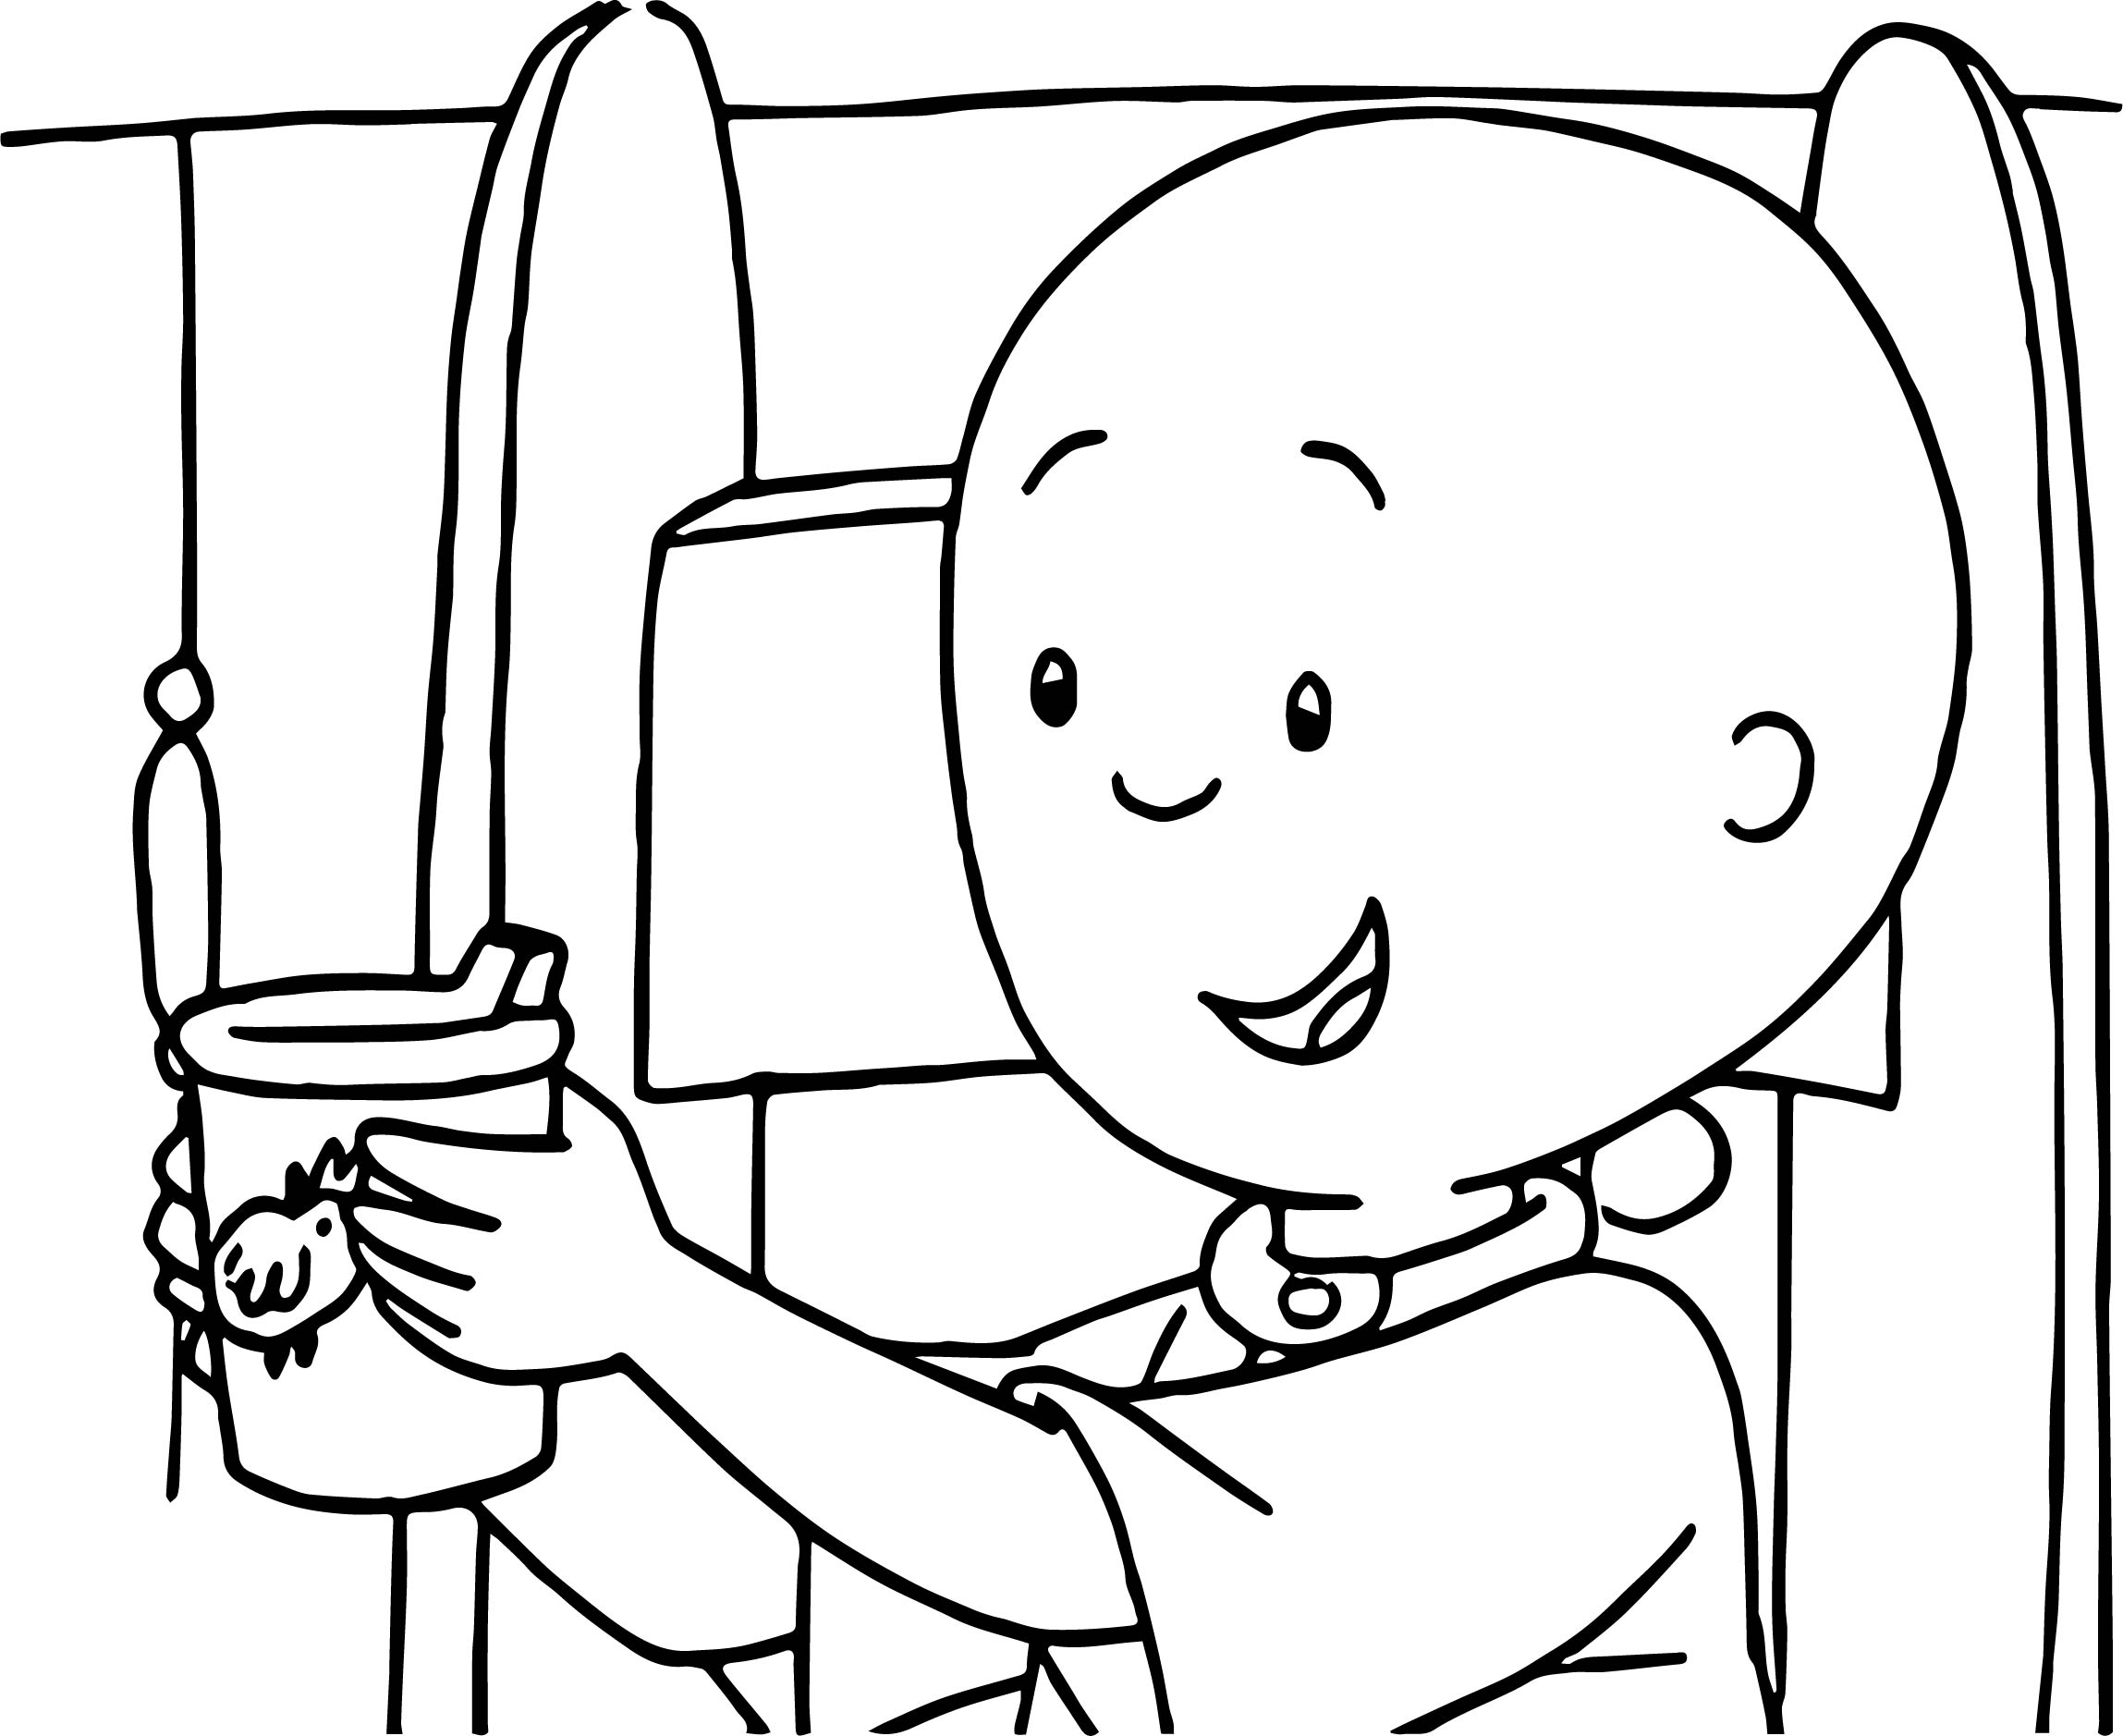 Caillou Cup Coloring Page